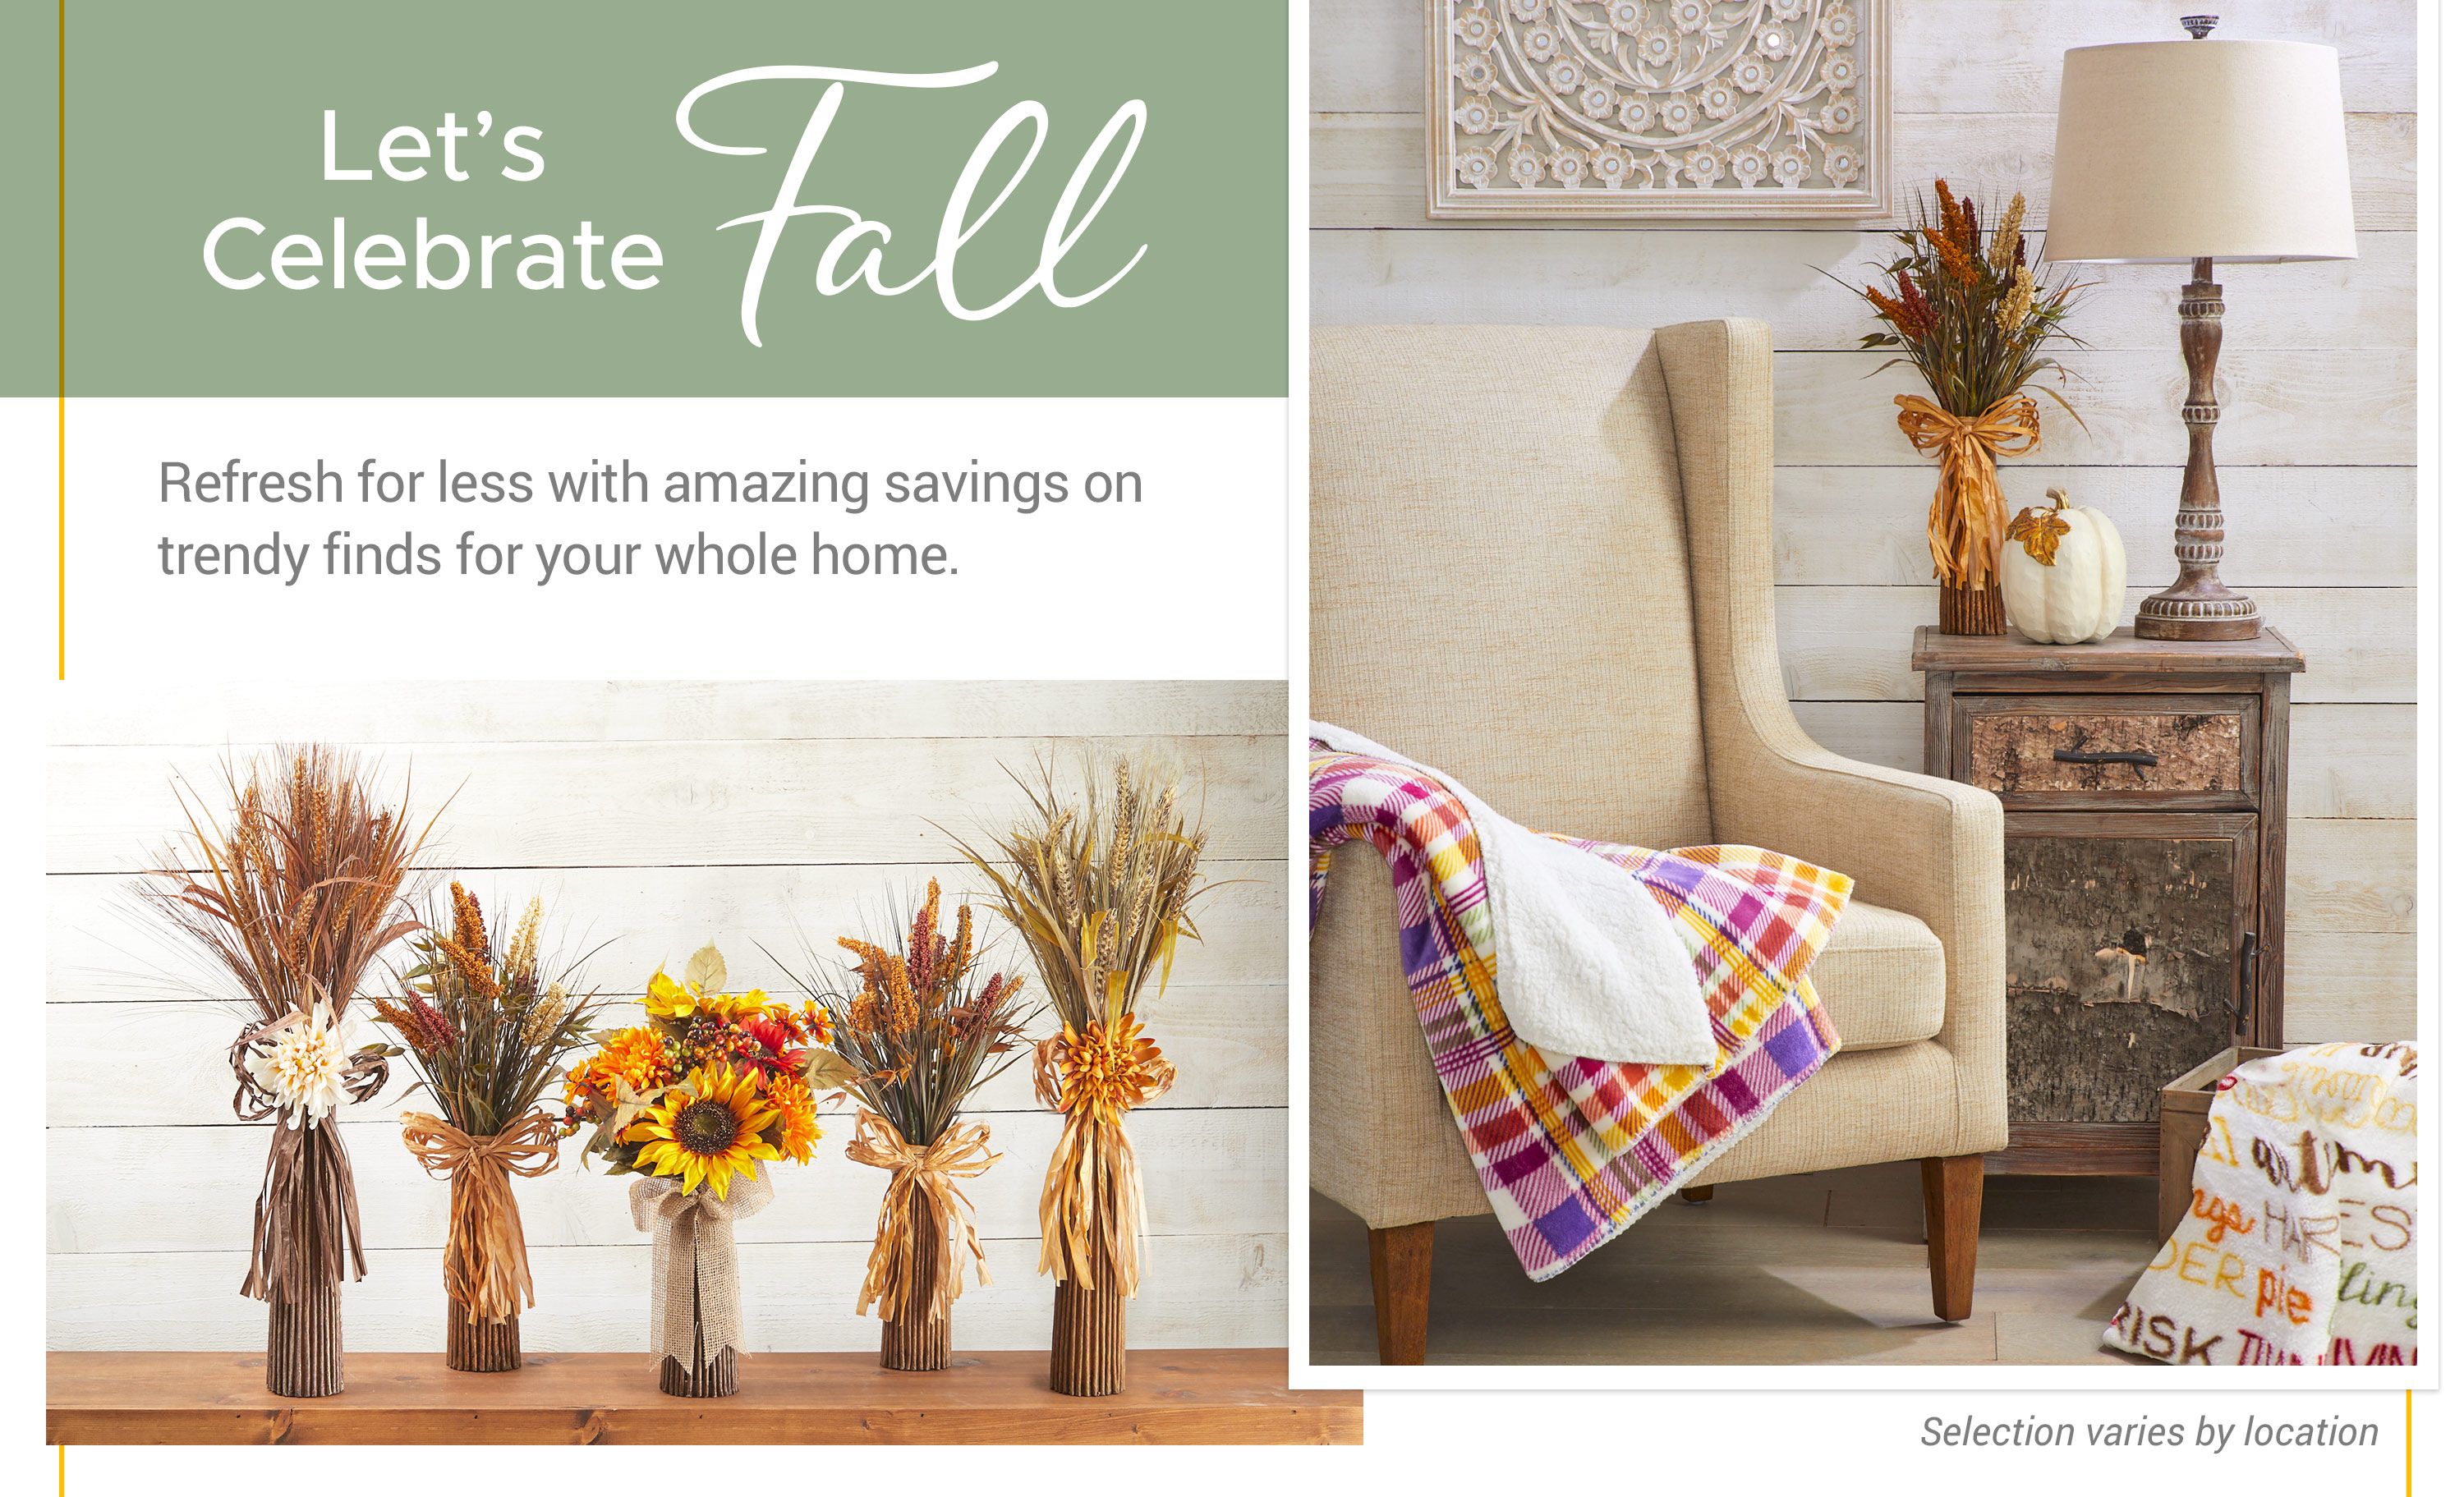 Let's Celebrate Fall - Refresh for less with amazing savings on trendy finds for your whole home.